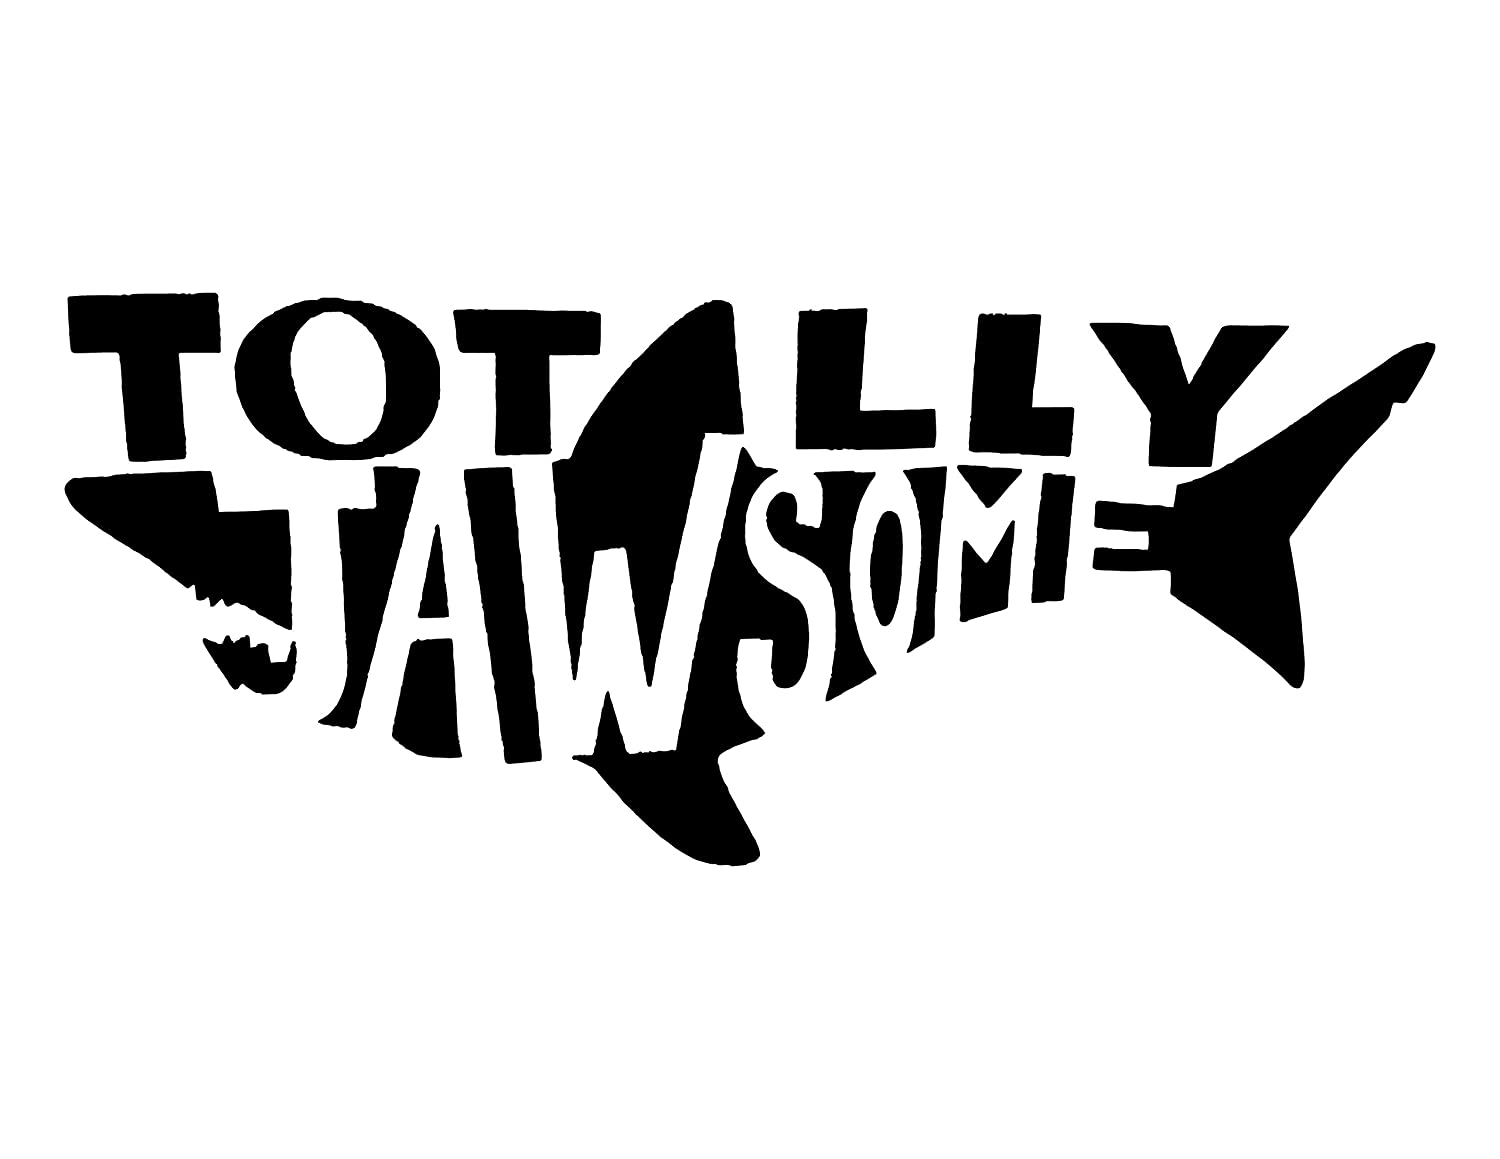 Totally Jawsome Shark Vinyl Decal Sticker Car Truck Van SUV Window Wall Cup Laptop - One 7.5 Inch Black Decal- MKS0688